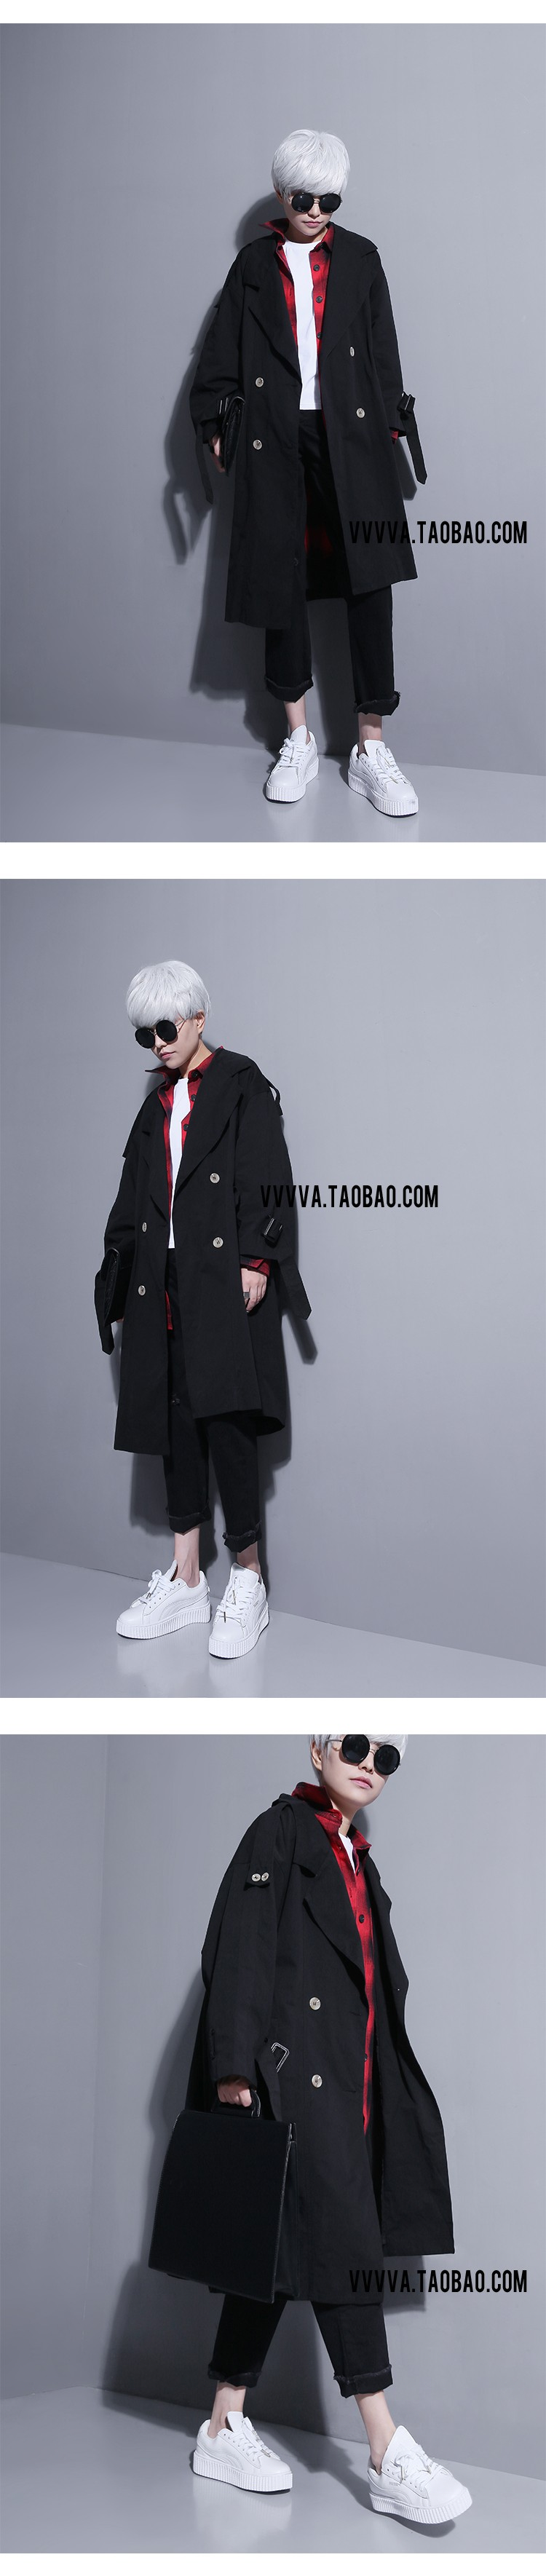 Women South Korea University Design Double Breasted Trench Coat Explosive Temperament Trench Clothing Black White Khaki